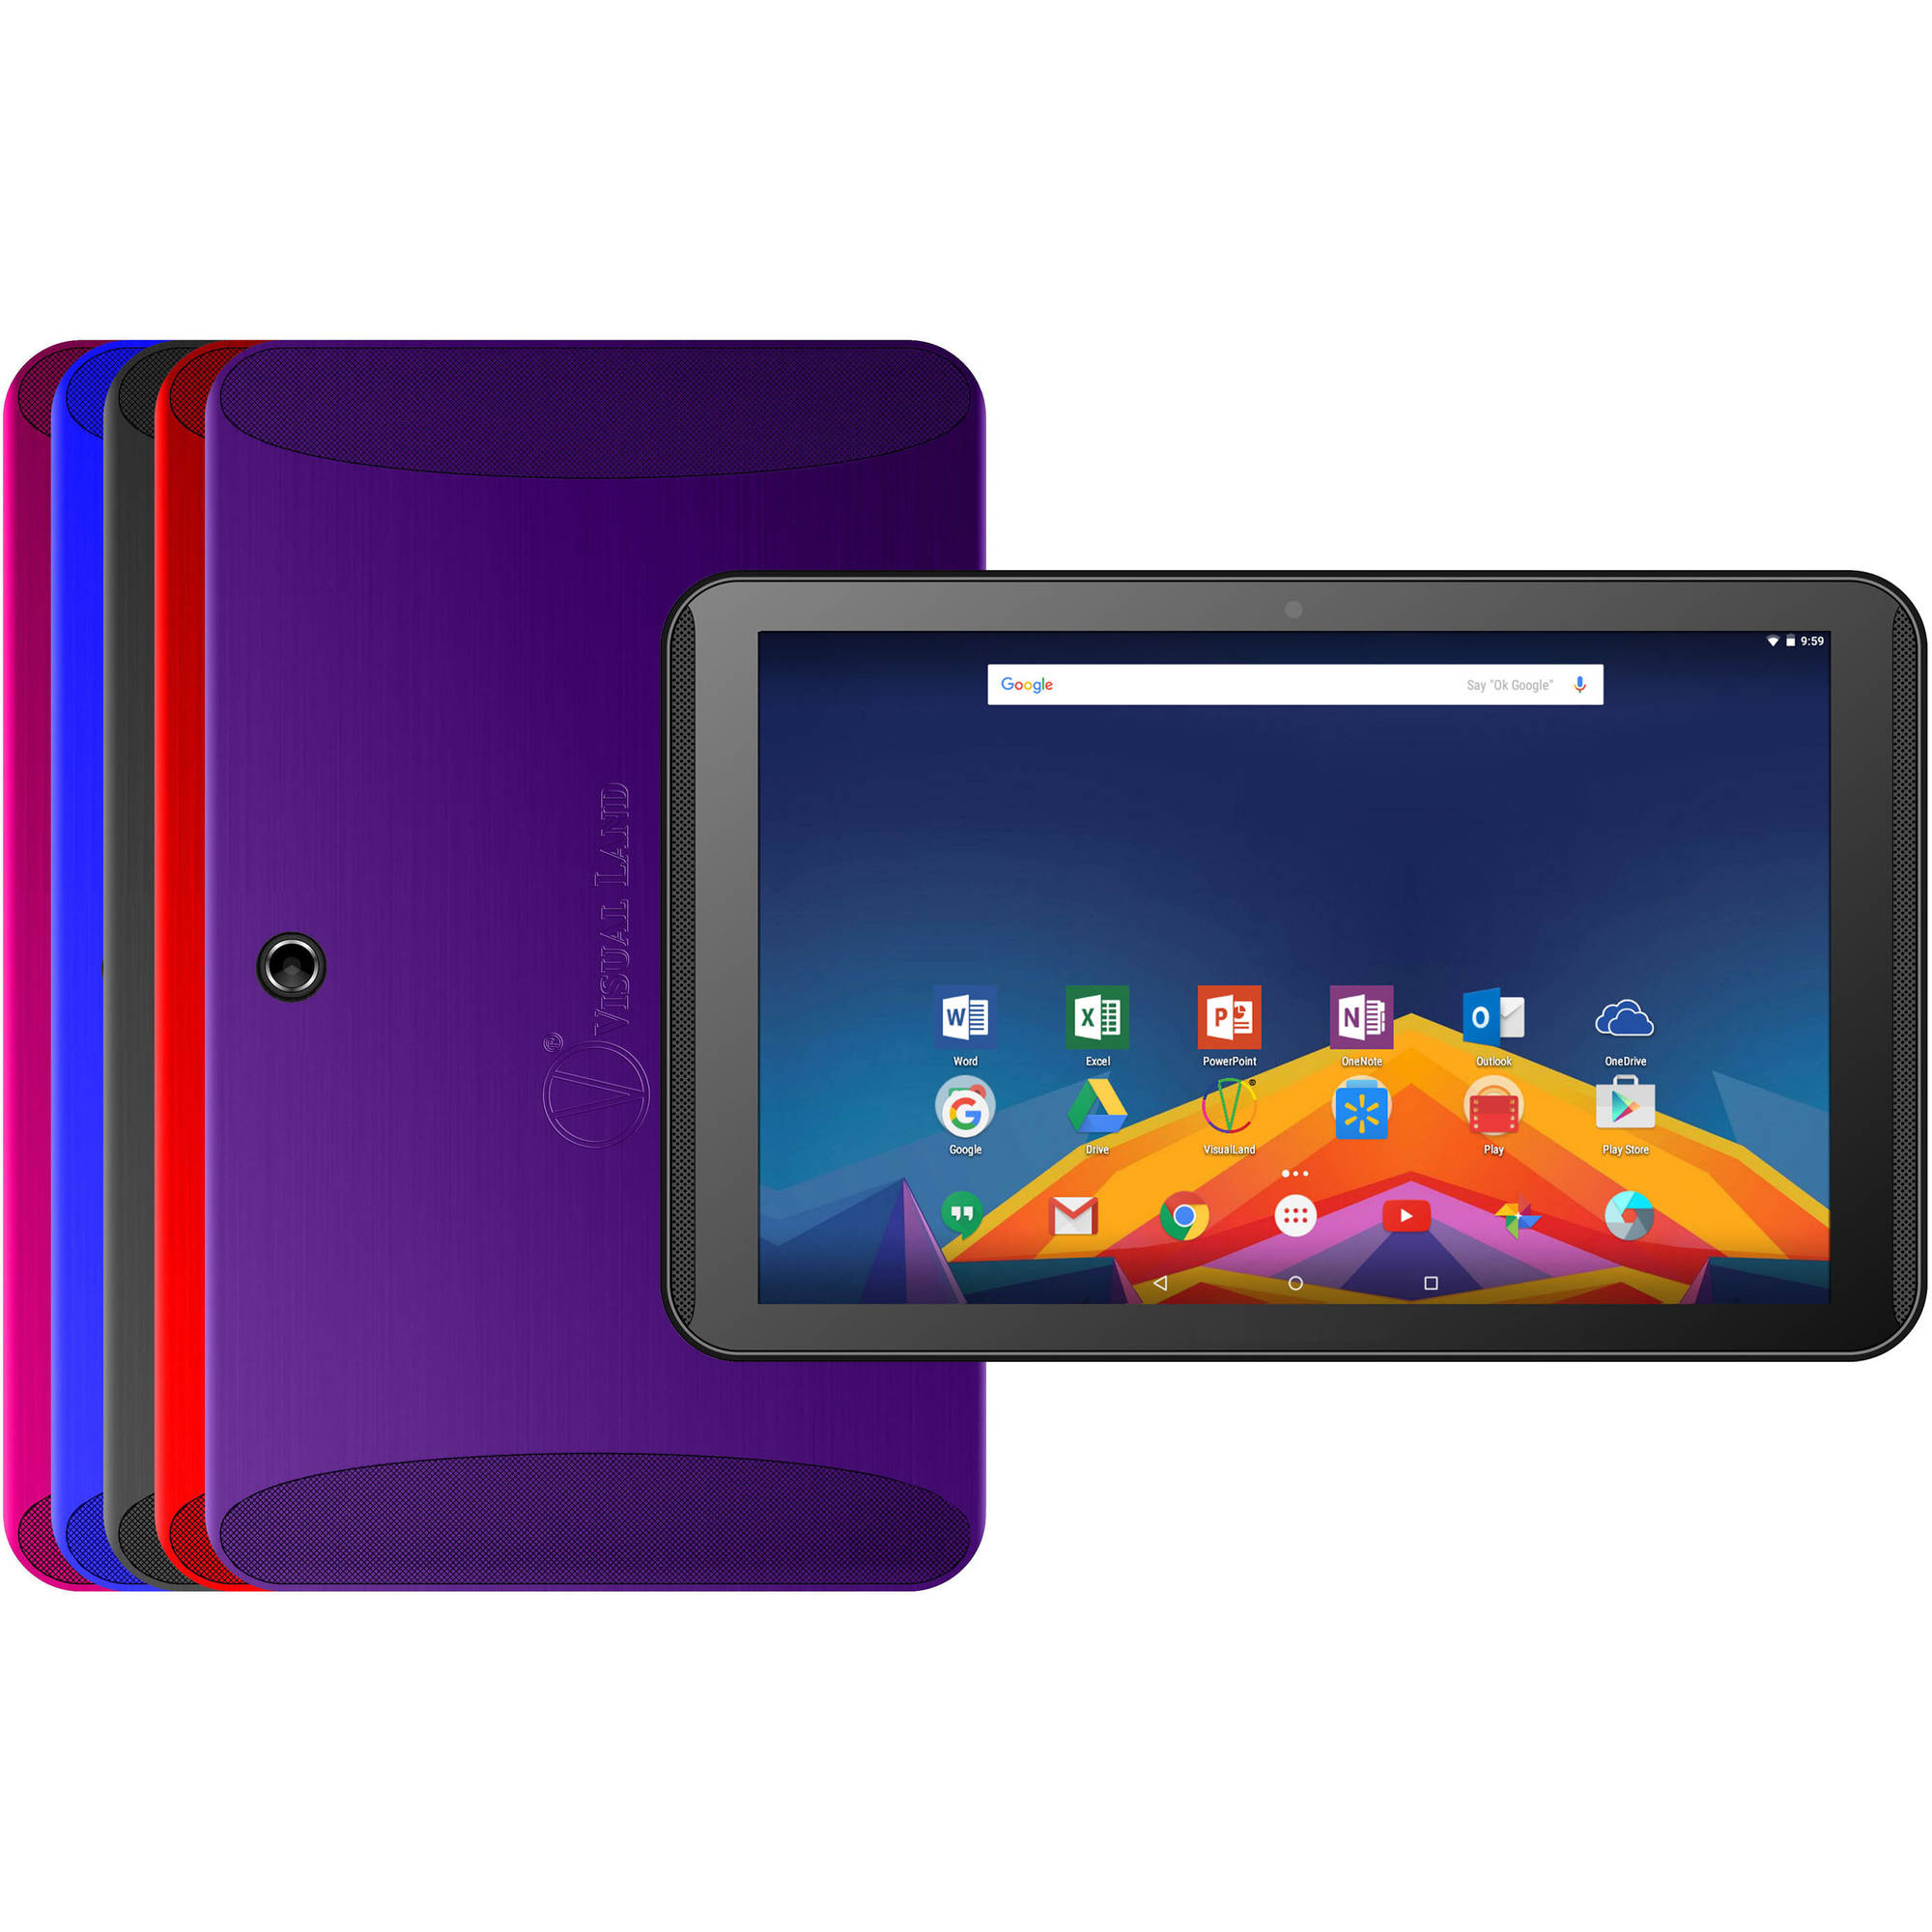 "Visual Land Prestige 10.1"" IPS 64 Bit Octacore Android 6.0 Marshmallow w/ Microsoft Office Apps Included"